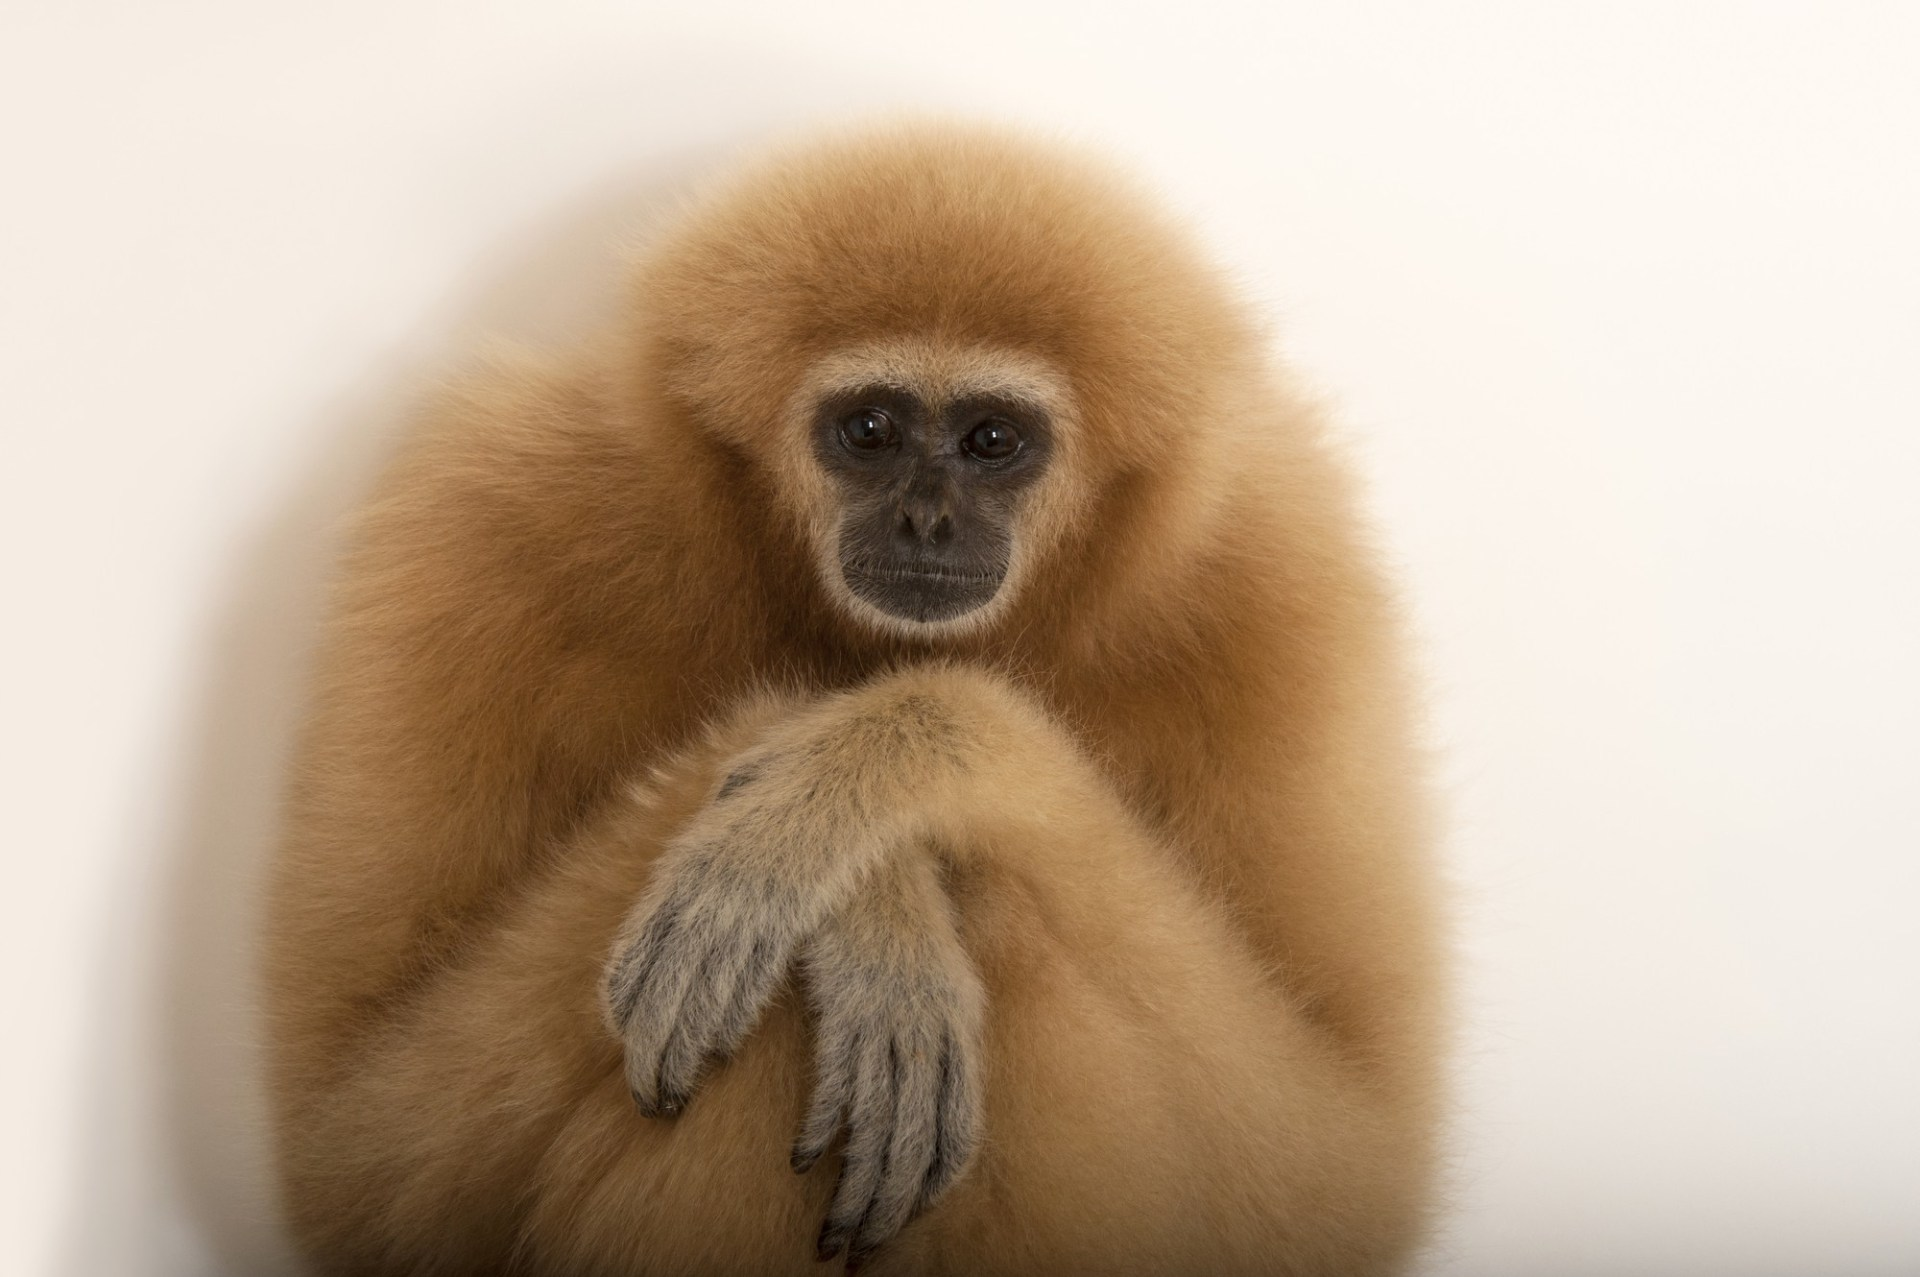 An endangered lar gibbon (Hylobates lar) at the Gladys Porter Zoo in Brownsville, Texas.